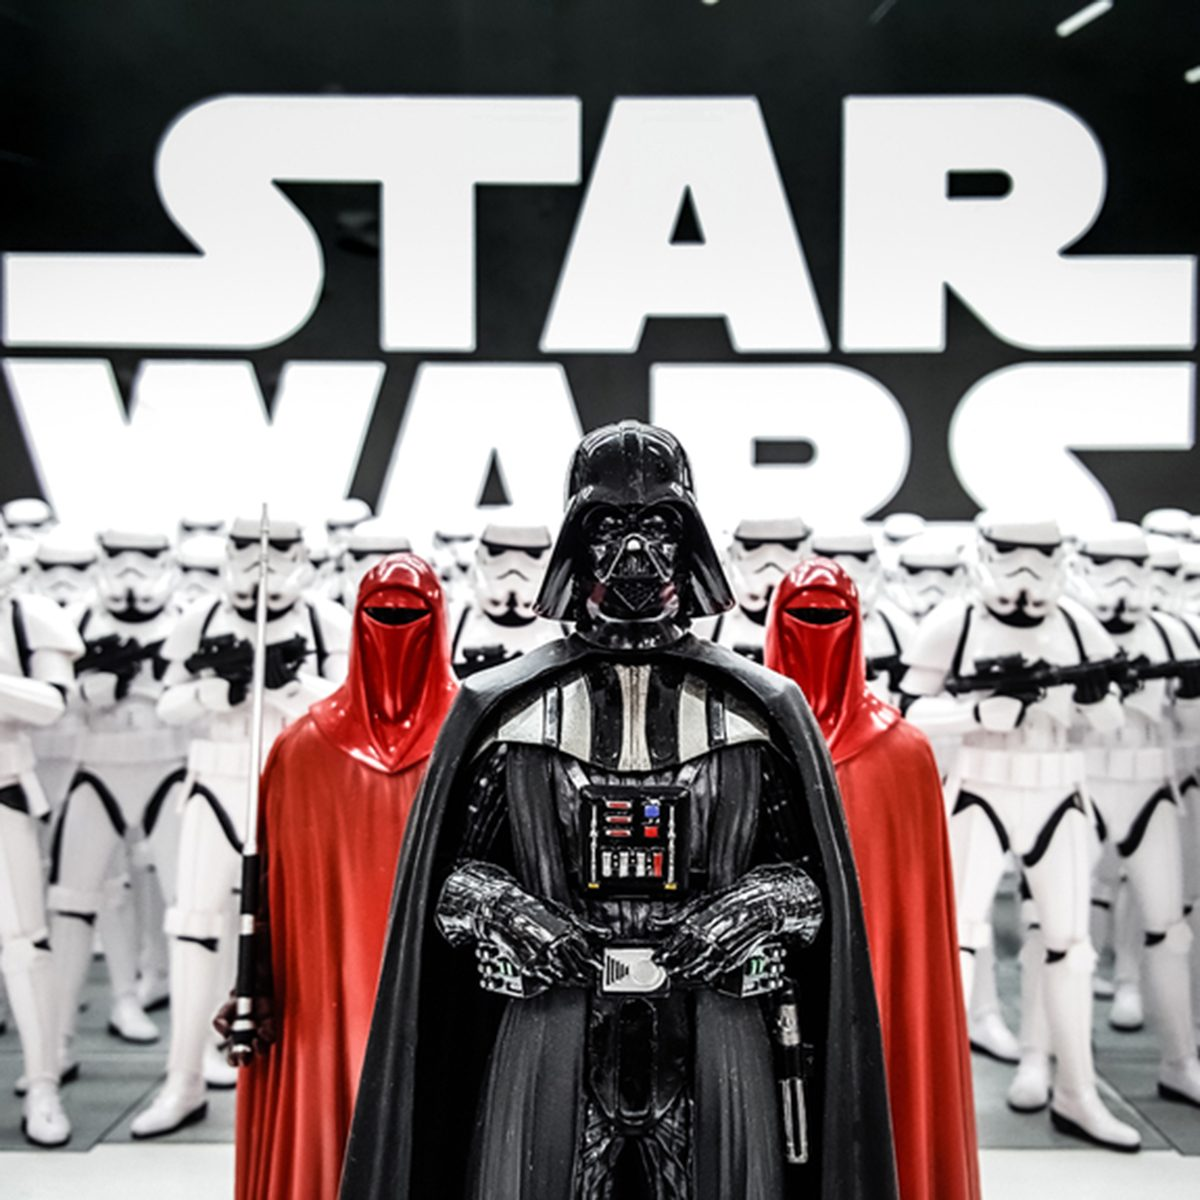 ToKyo, Japan - Feb 19 2017, Darth Vader from Star wars with Stormtroopers army figures in background ; Shutterstock ID 612277085